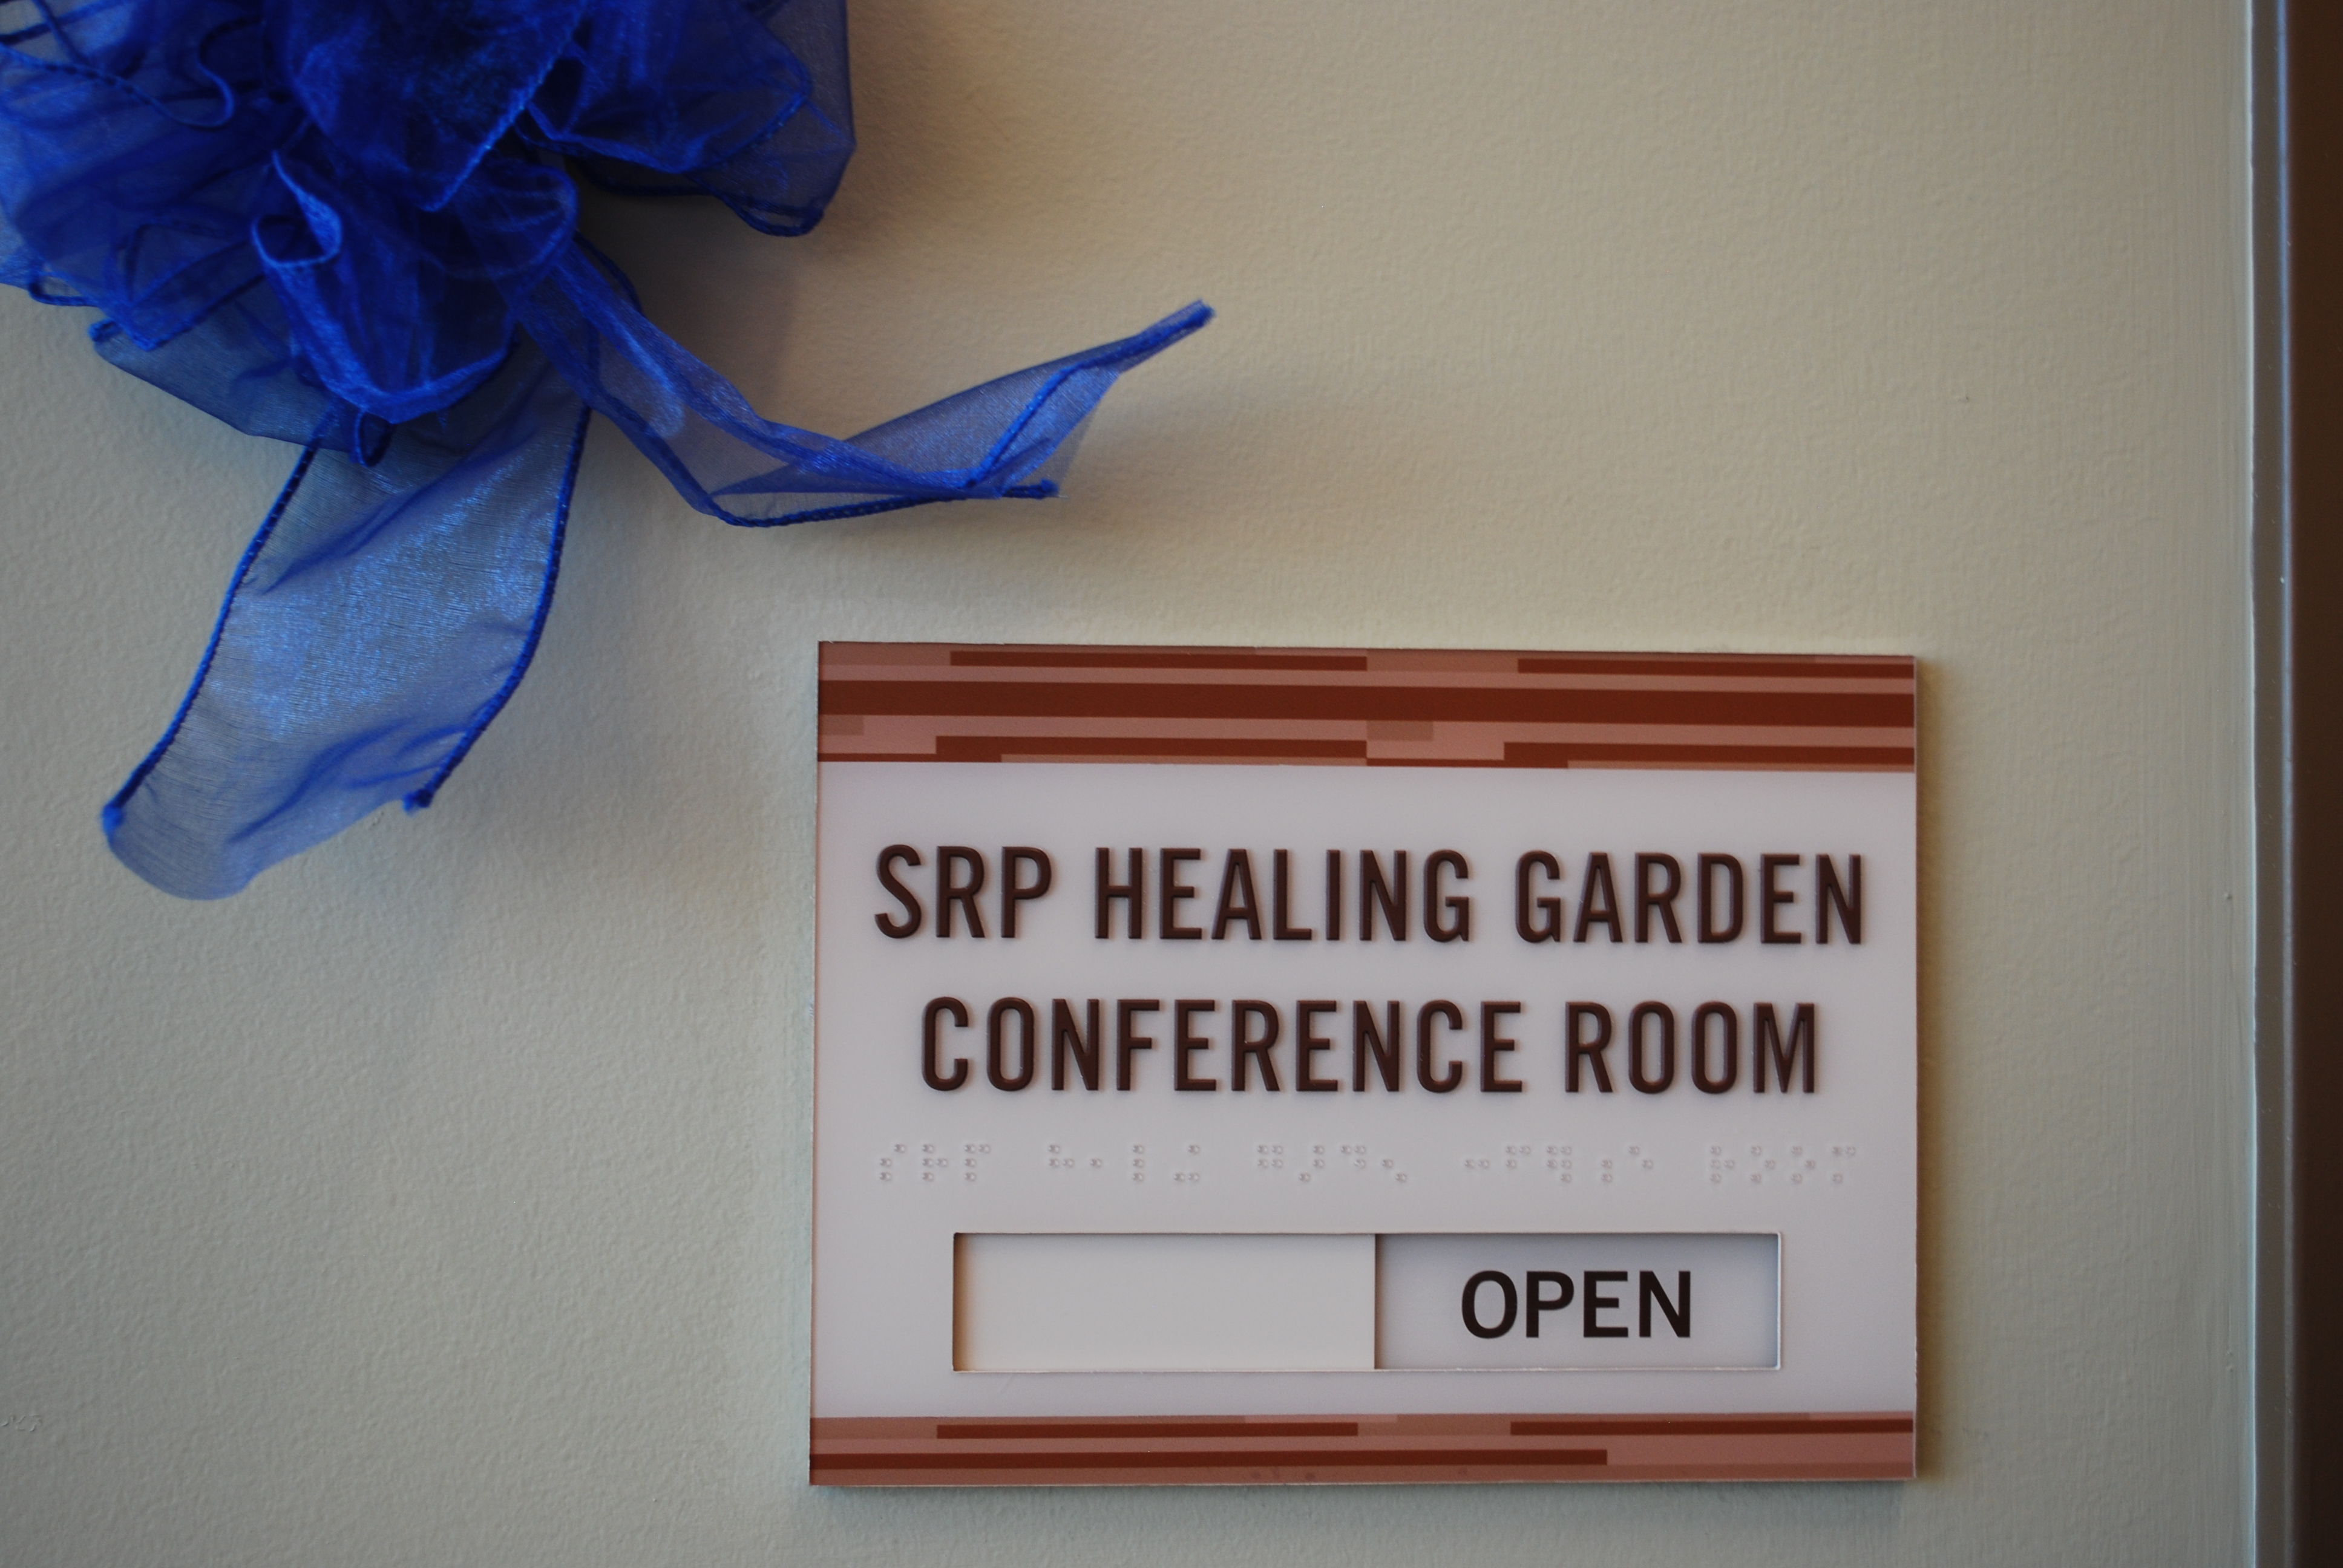 SRP conference room sign